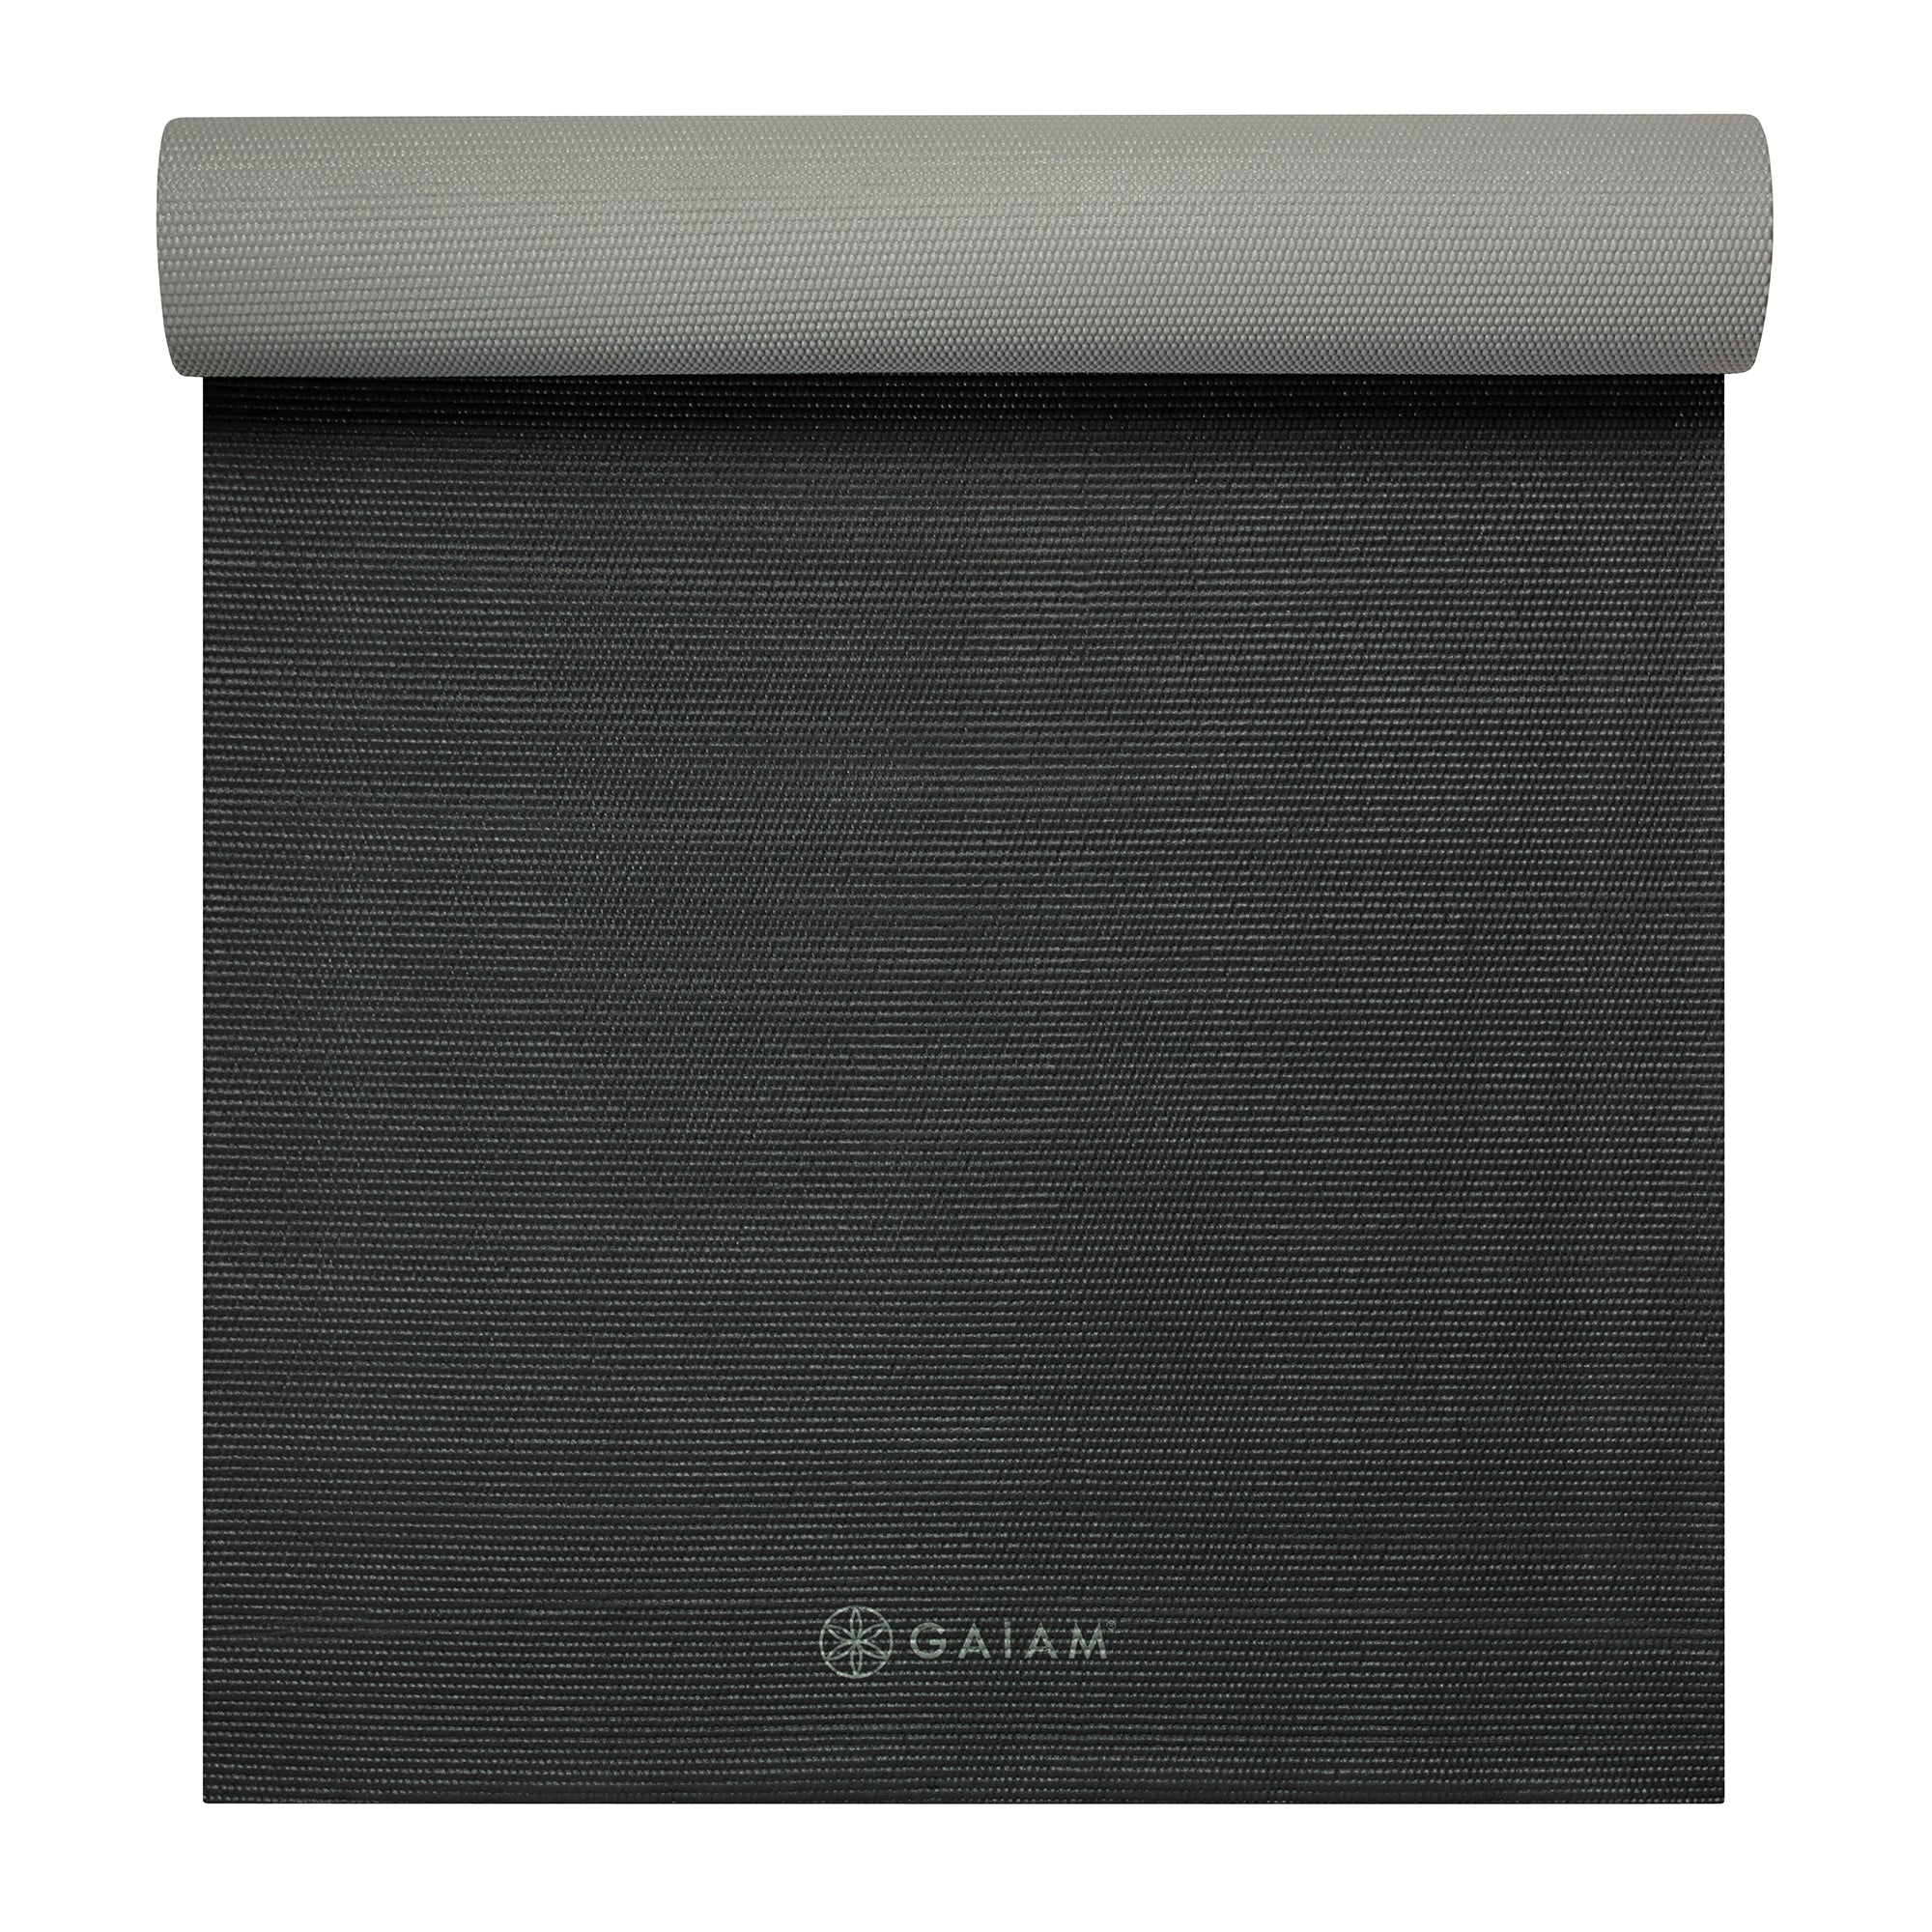 "This Athletic Yoga Mat from Gaiam is wider and longer than traditional mats to add more space and stability for those difficult extended poses. The extra-sticky 5mm surface will support you through even the most challenging of classes and exercises, while the reversible black and gray sides bring you versatility. 2"" wider and 10"" longer than standard mats No slip surface for any pose or practice Supportive 5mm thickness for joint protection Ideal for home, studio, or gym use Reversible, black or gray Made from long wearing and lightweight PVC 6P and latex free Measurements: 26"" wide x 78"" long x 5mm. Materials: PVC. Latex Free. 6P Free: Free of DEHP, DBO, BBO, DINP, DIDP, AND DNOP phthalates. Care Instructions: Yoga mats release a very strong but harmless odor when first unwrapped. Please unroll and air out your mat 2-3 before use. Spot clean with a damp cloth. Dry flat. The mat may fade or become brittle and unusable if exposed to the sun for extended periods of time. We recommend st"